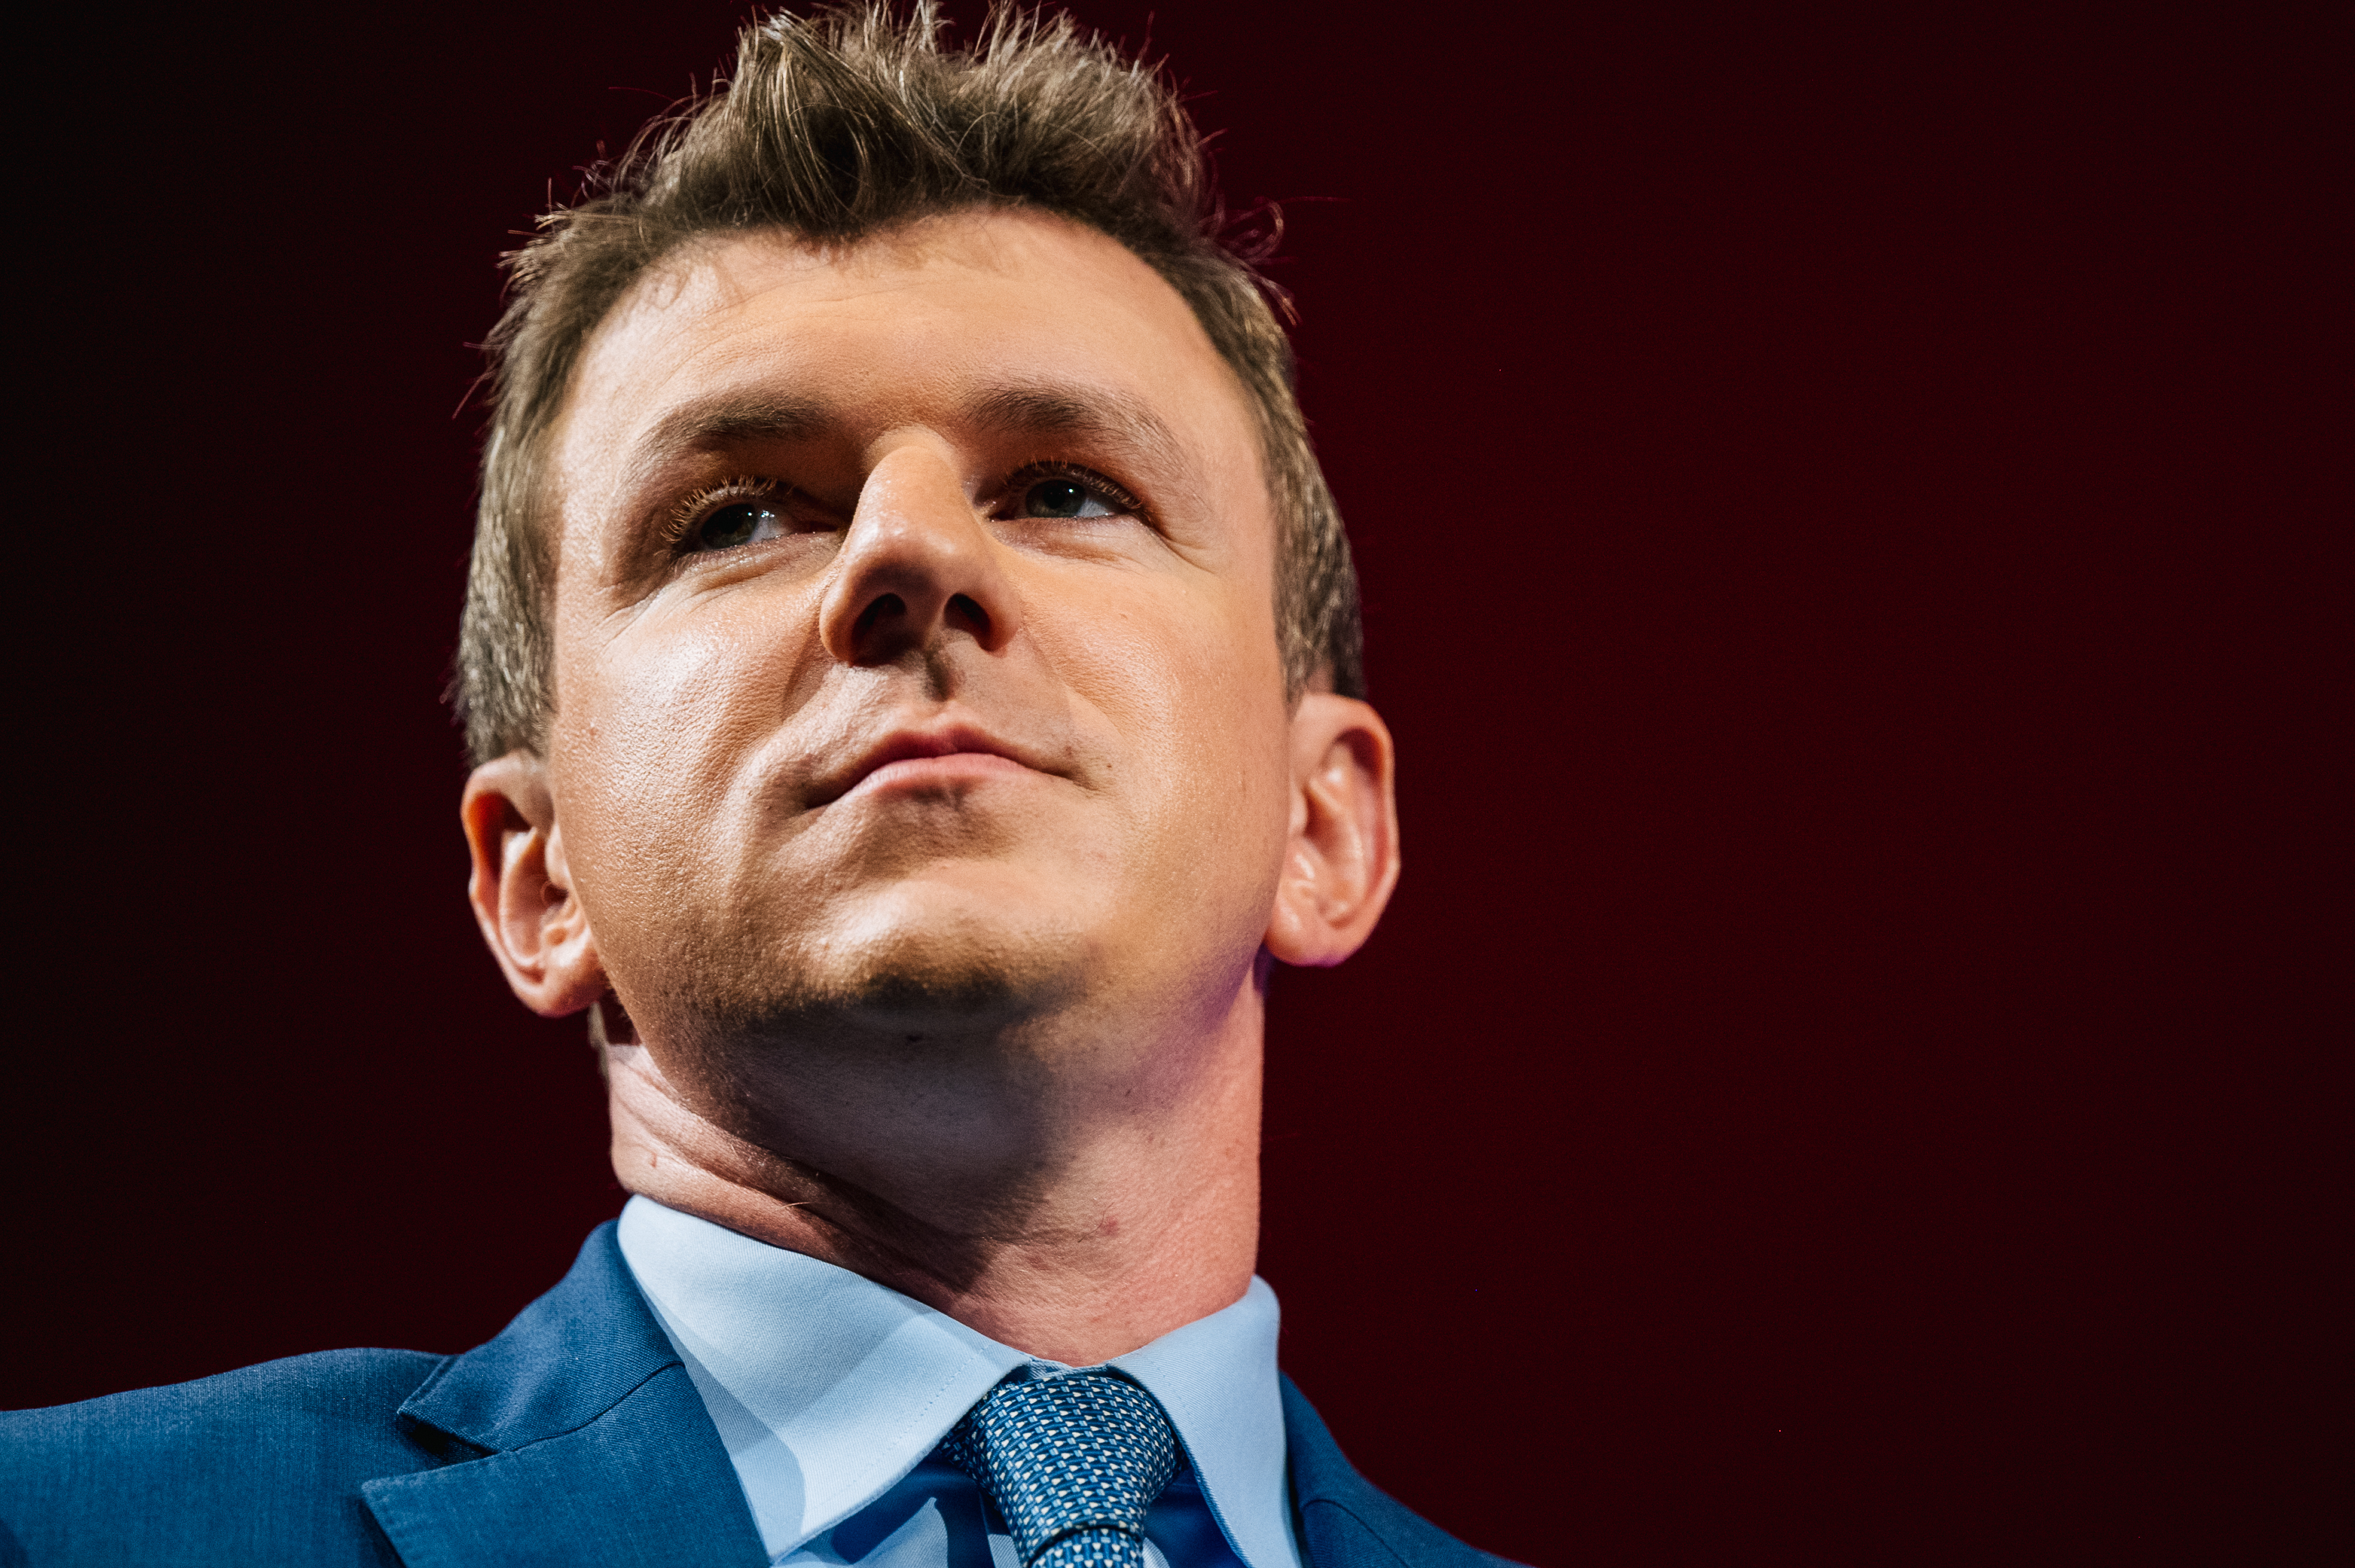 Project Veritas founder James O'Keefe looks on during the Conservative Political Action Conference CPAC held at the Hilton Anatole in Dallas, Texas. (Photo by Brandon Bell/Getty Images)